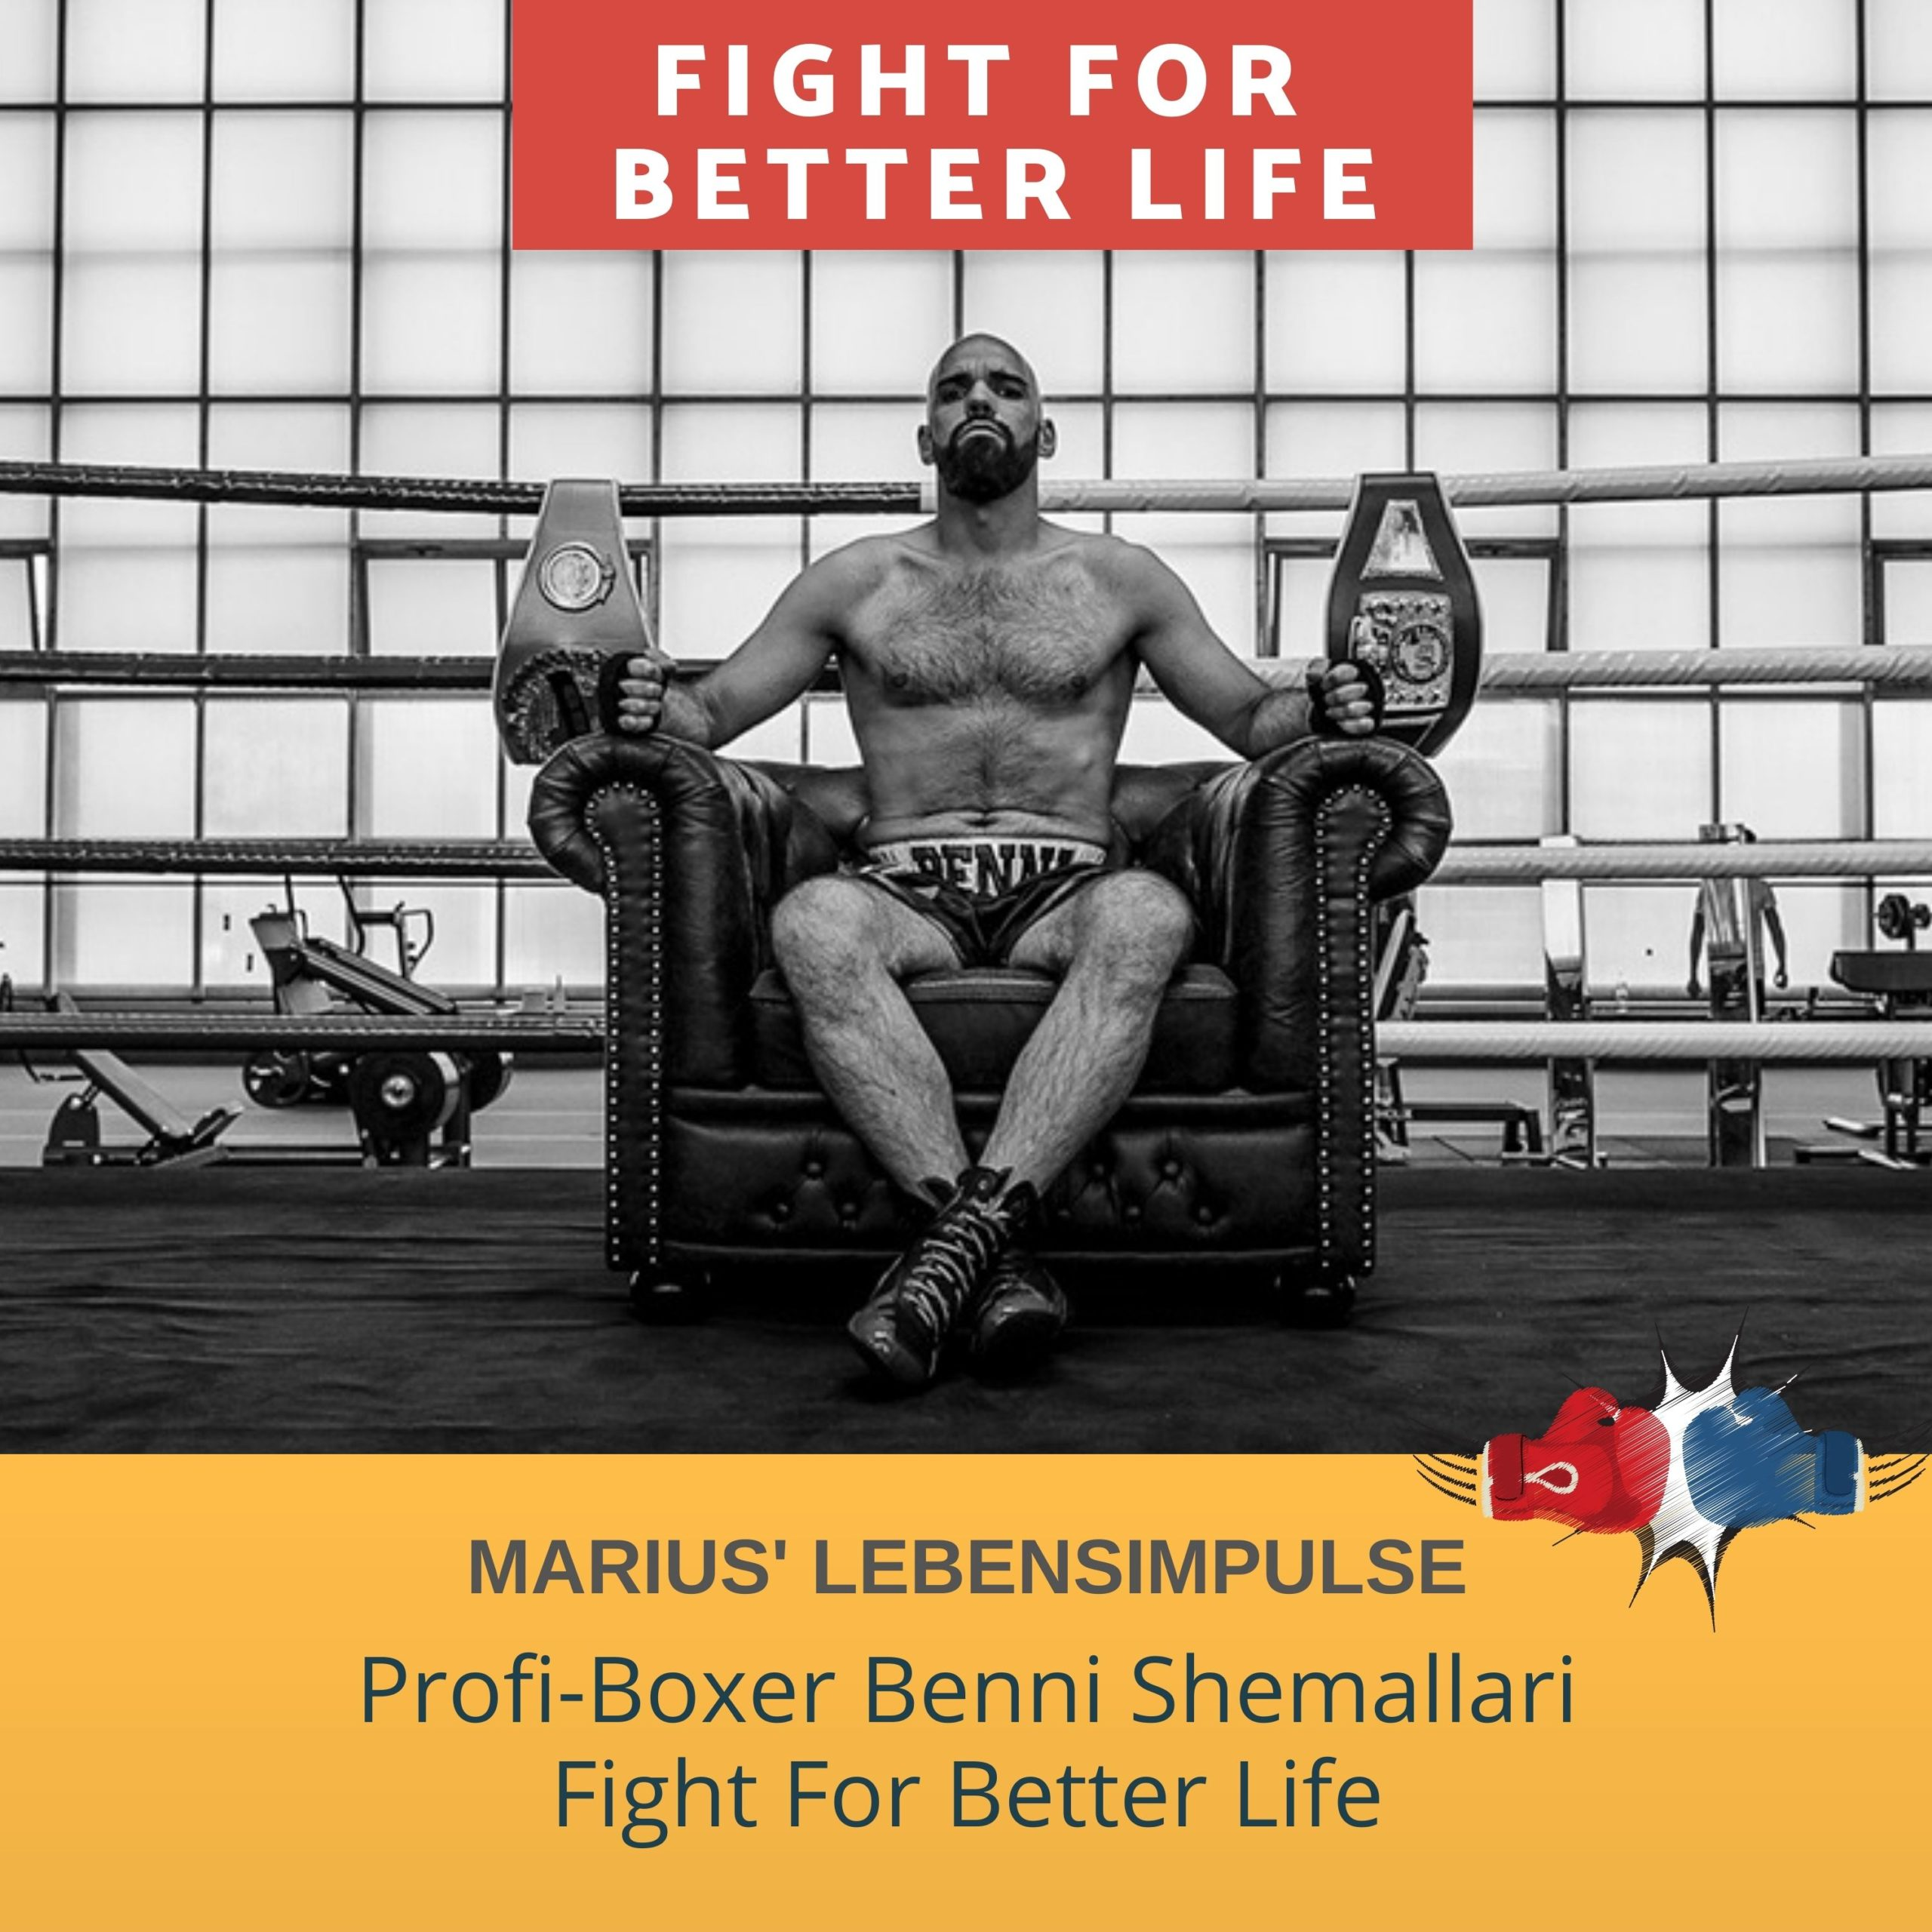 Benni Shemallari - Fight For Better Life